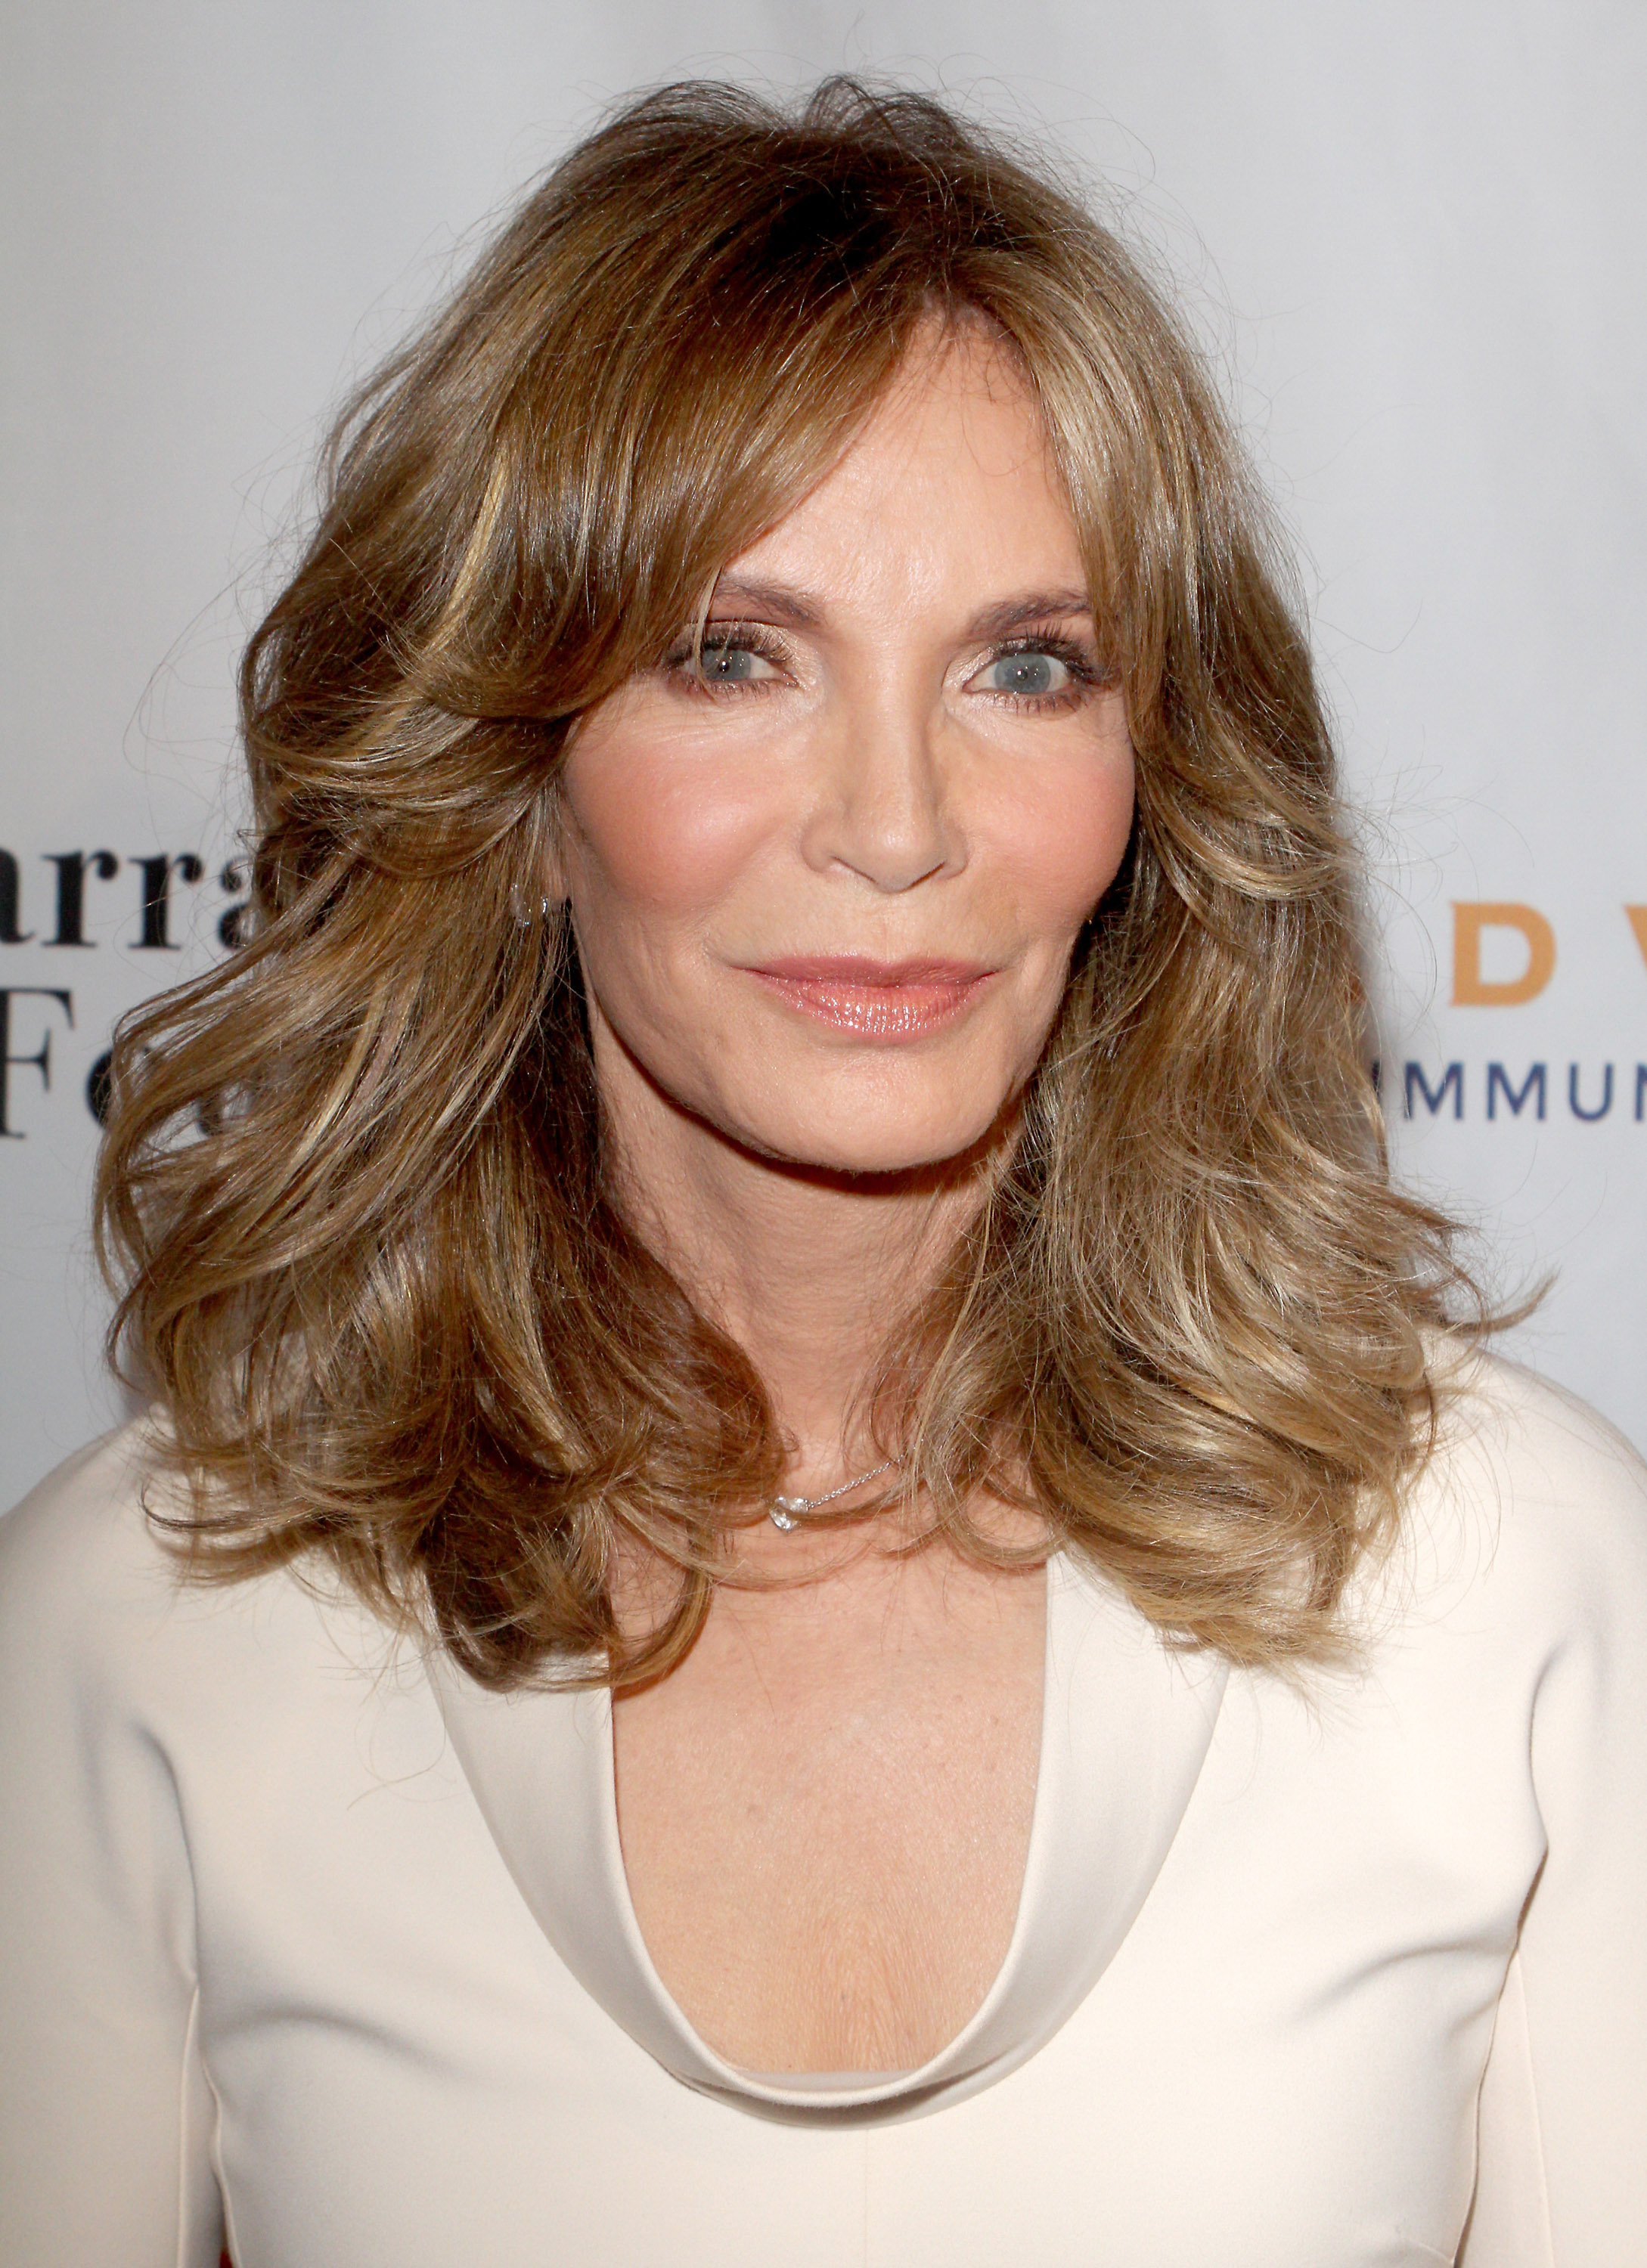 Jaclyn Smith Tells Closer She And Her Husband Of 20 Years